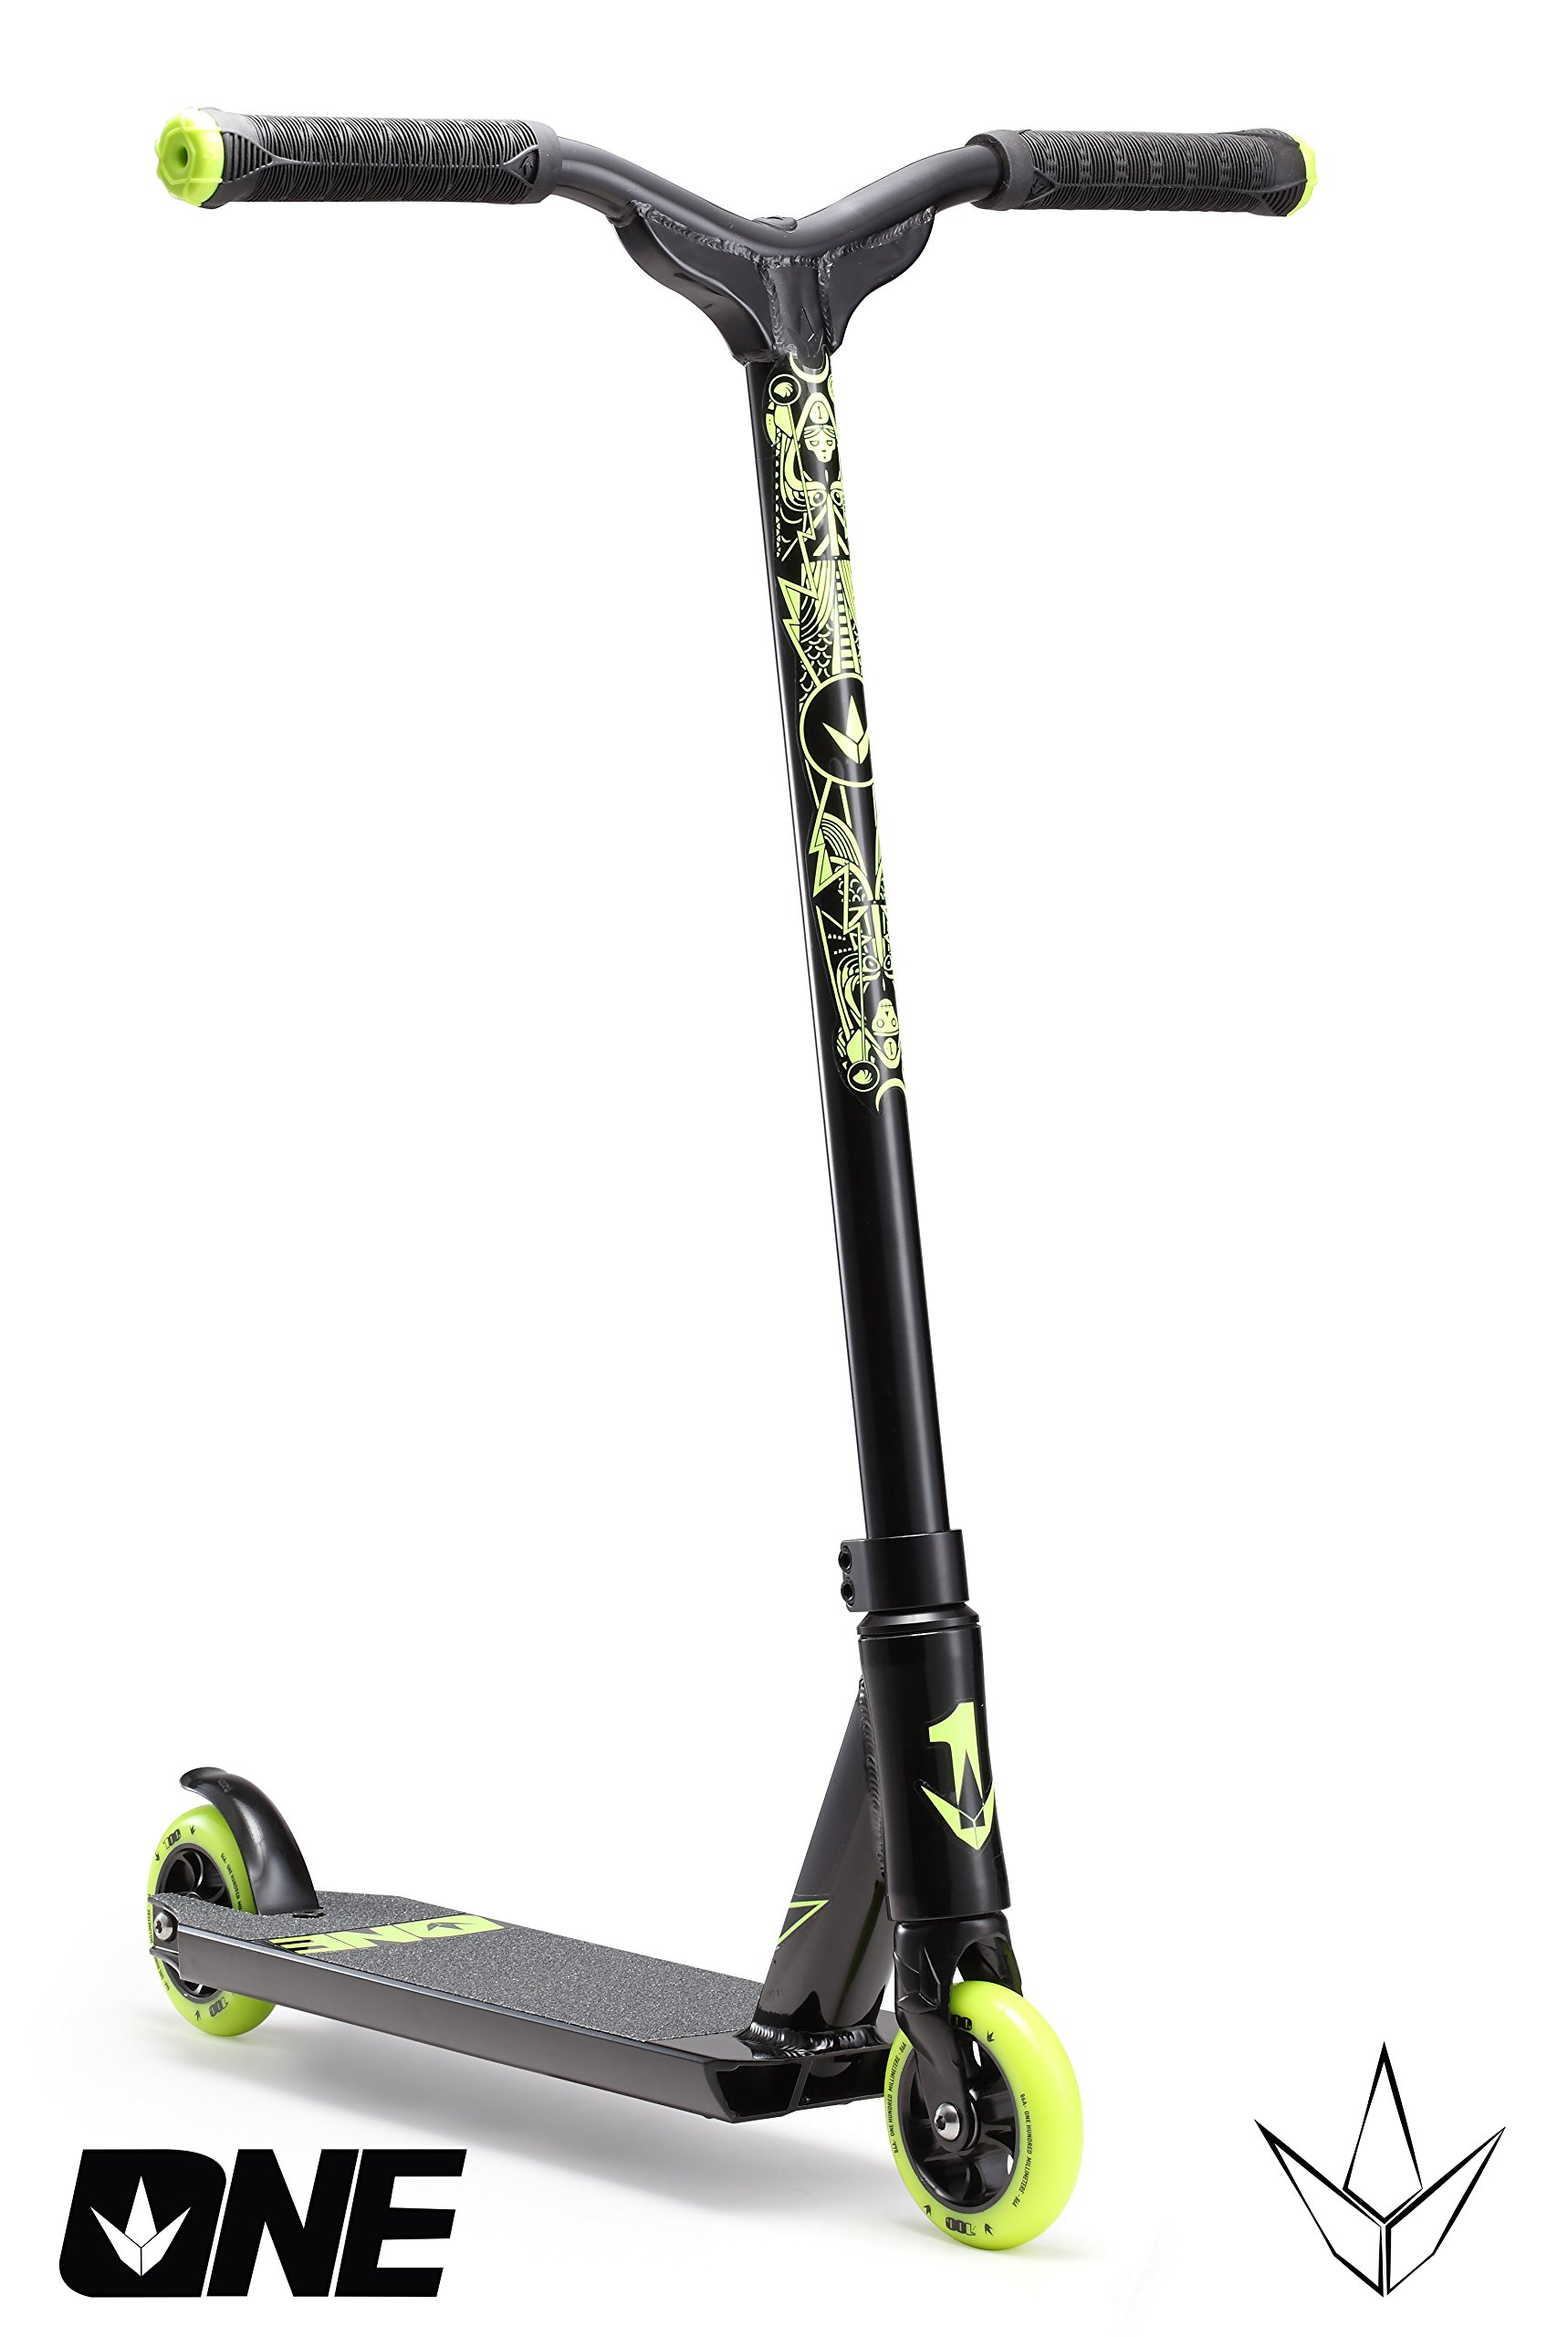 Envy One Freestyle Pro Scooter (Yellow)